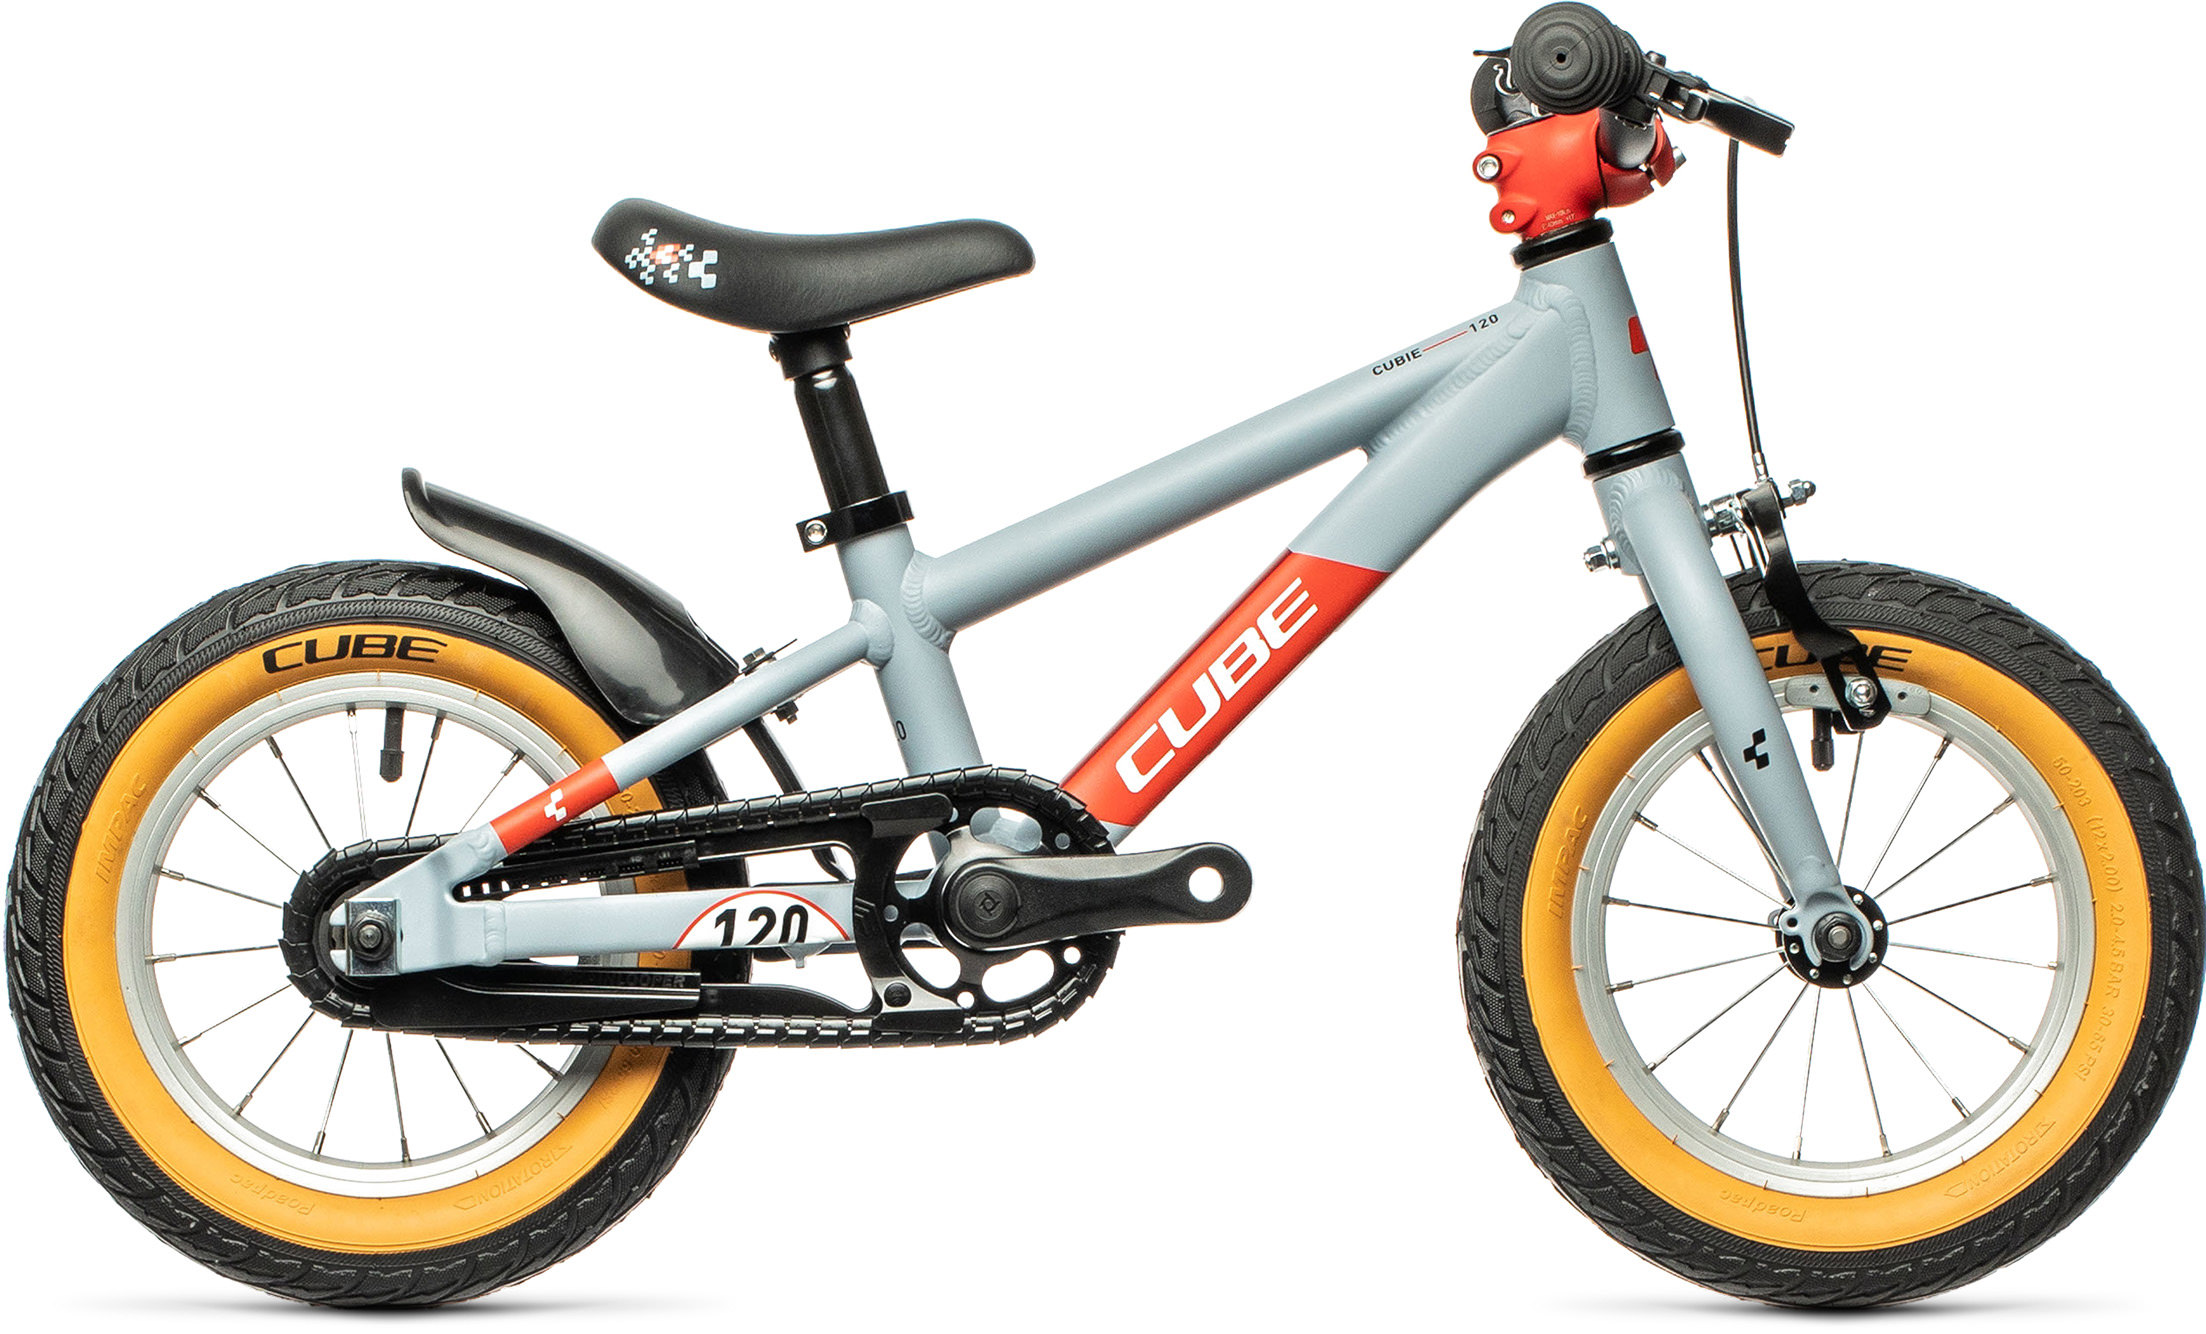 Cubie 120 grey´n´red | Bouticycle